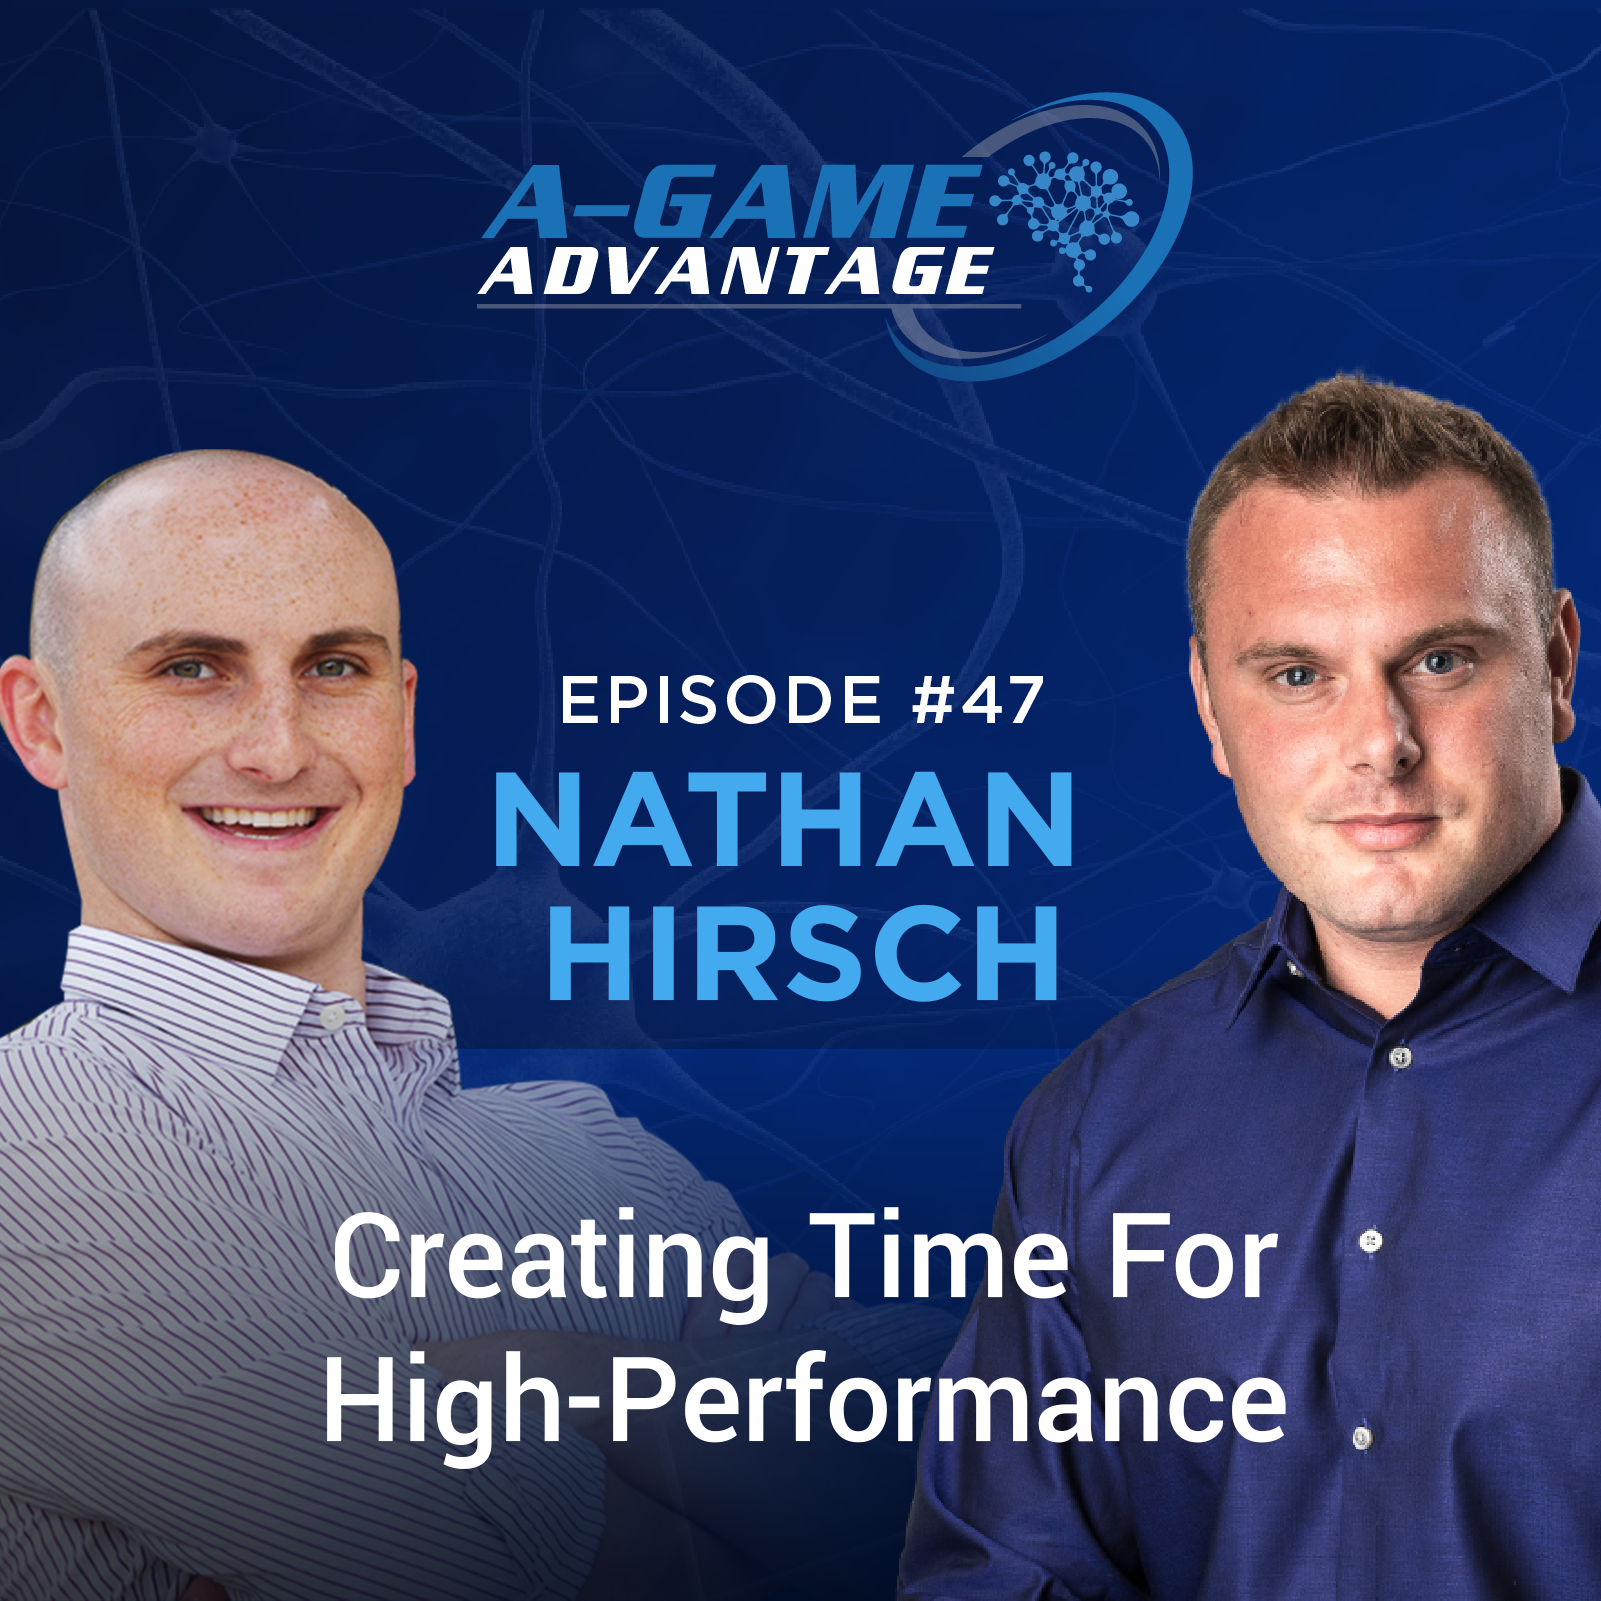 047 - Nathan Hirsch - Creating Time for High-Performance